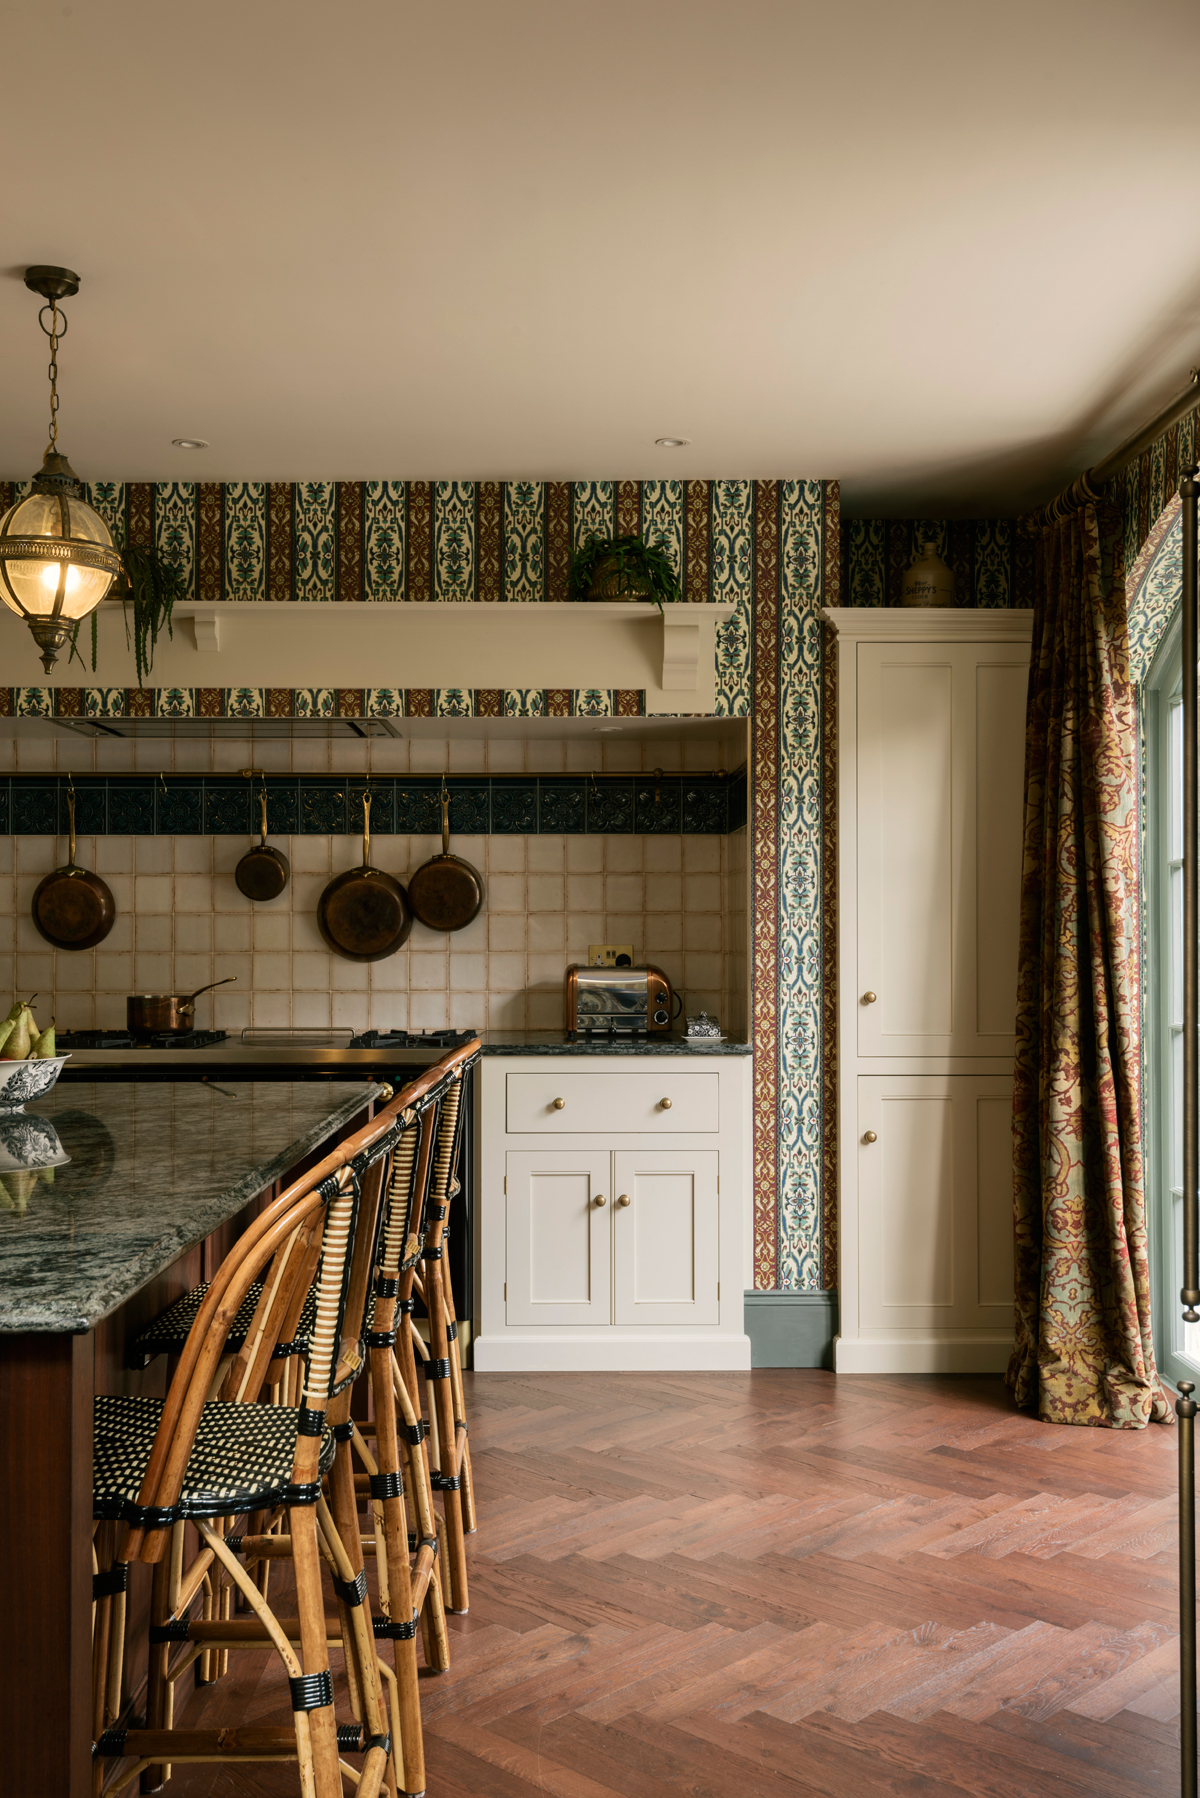 A solid wooden parquet floor was the perfect choice for this Victorian home